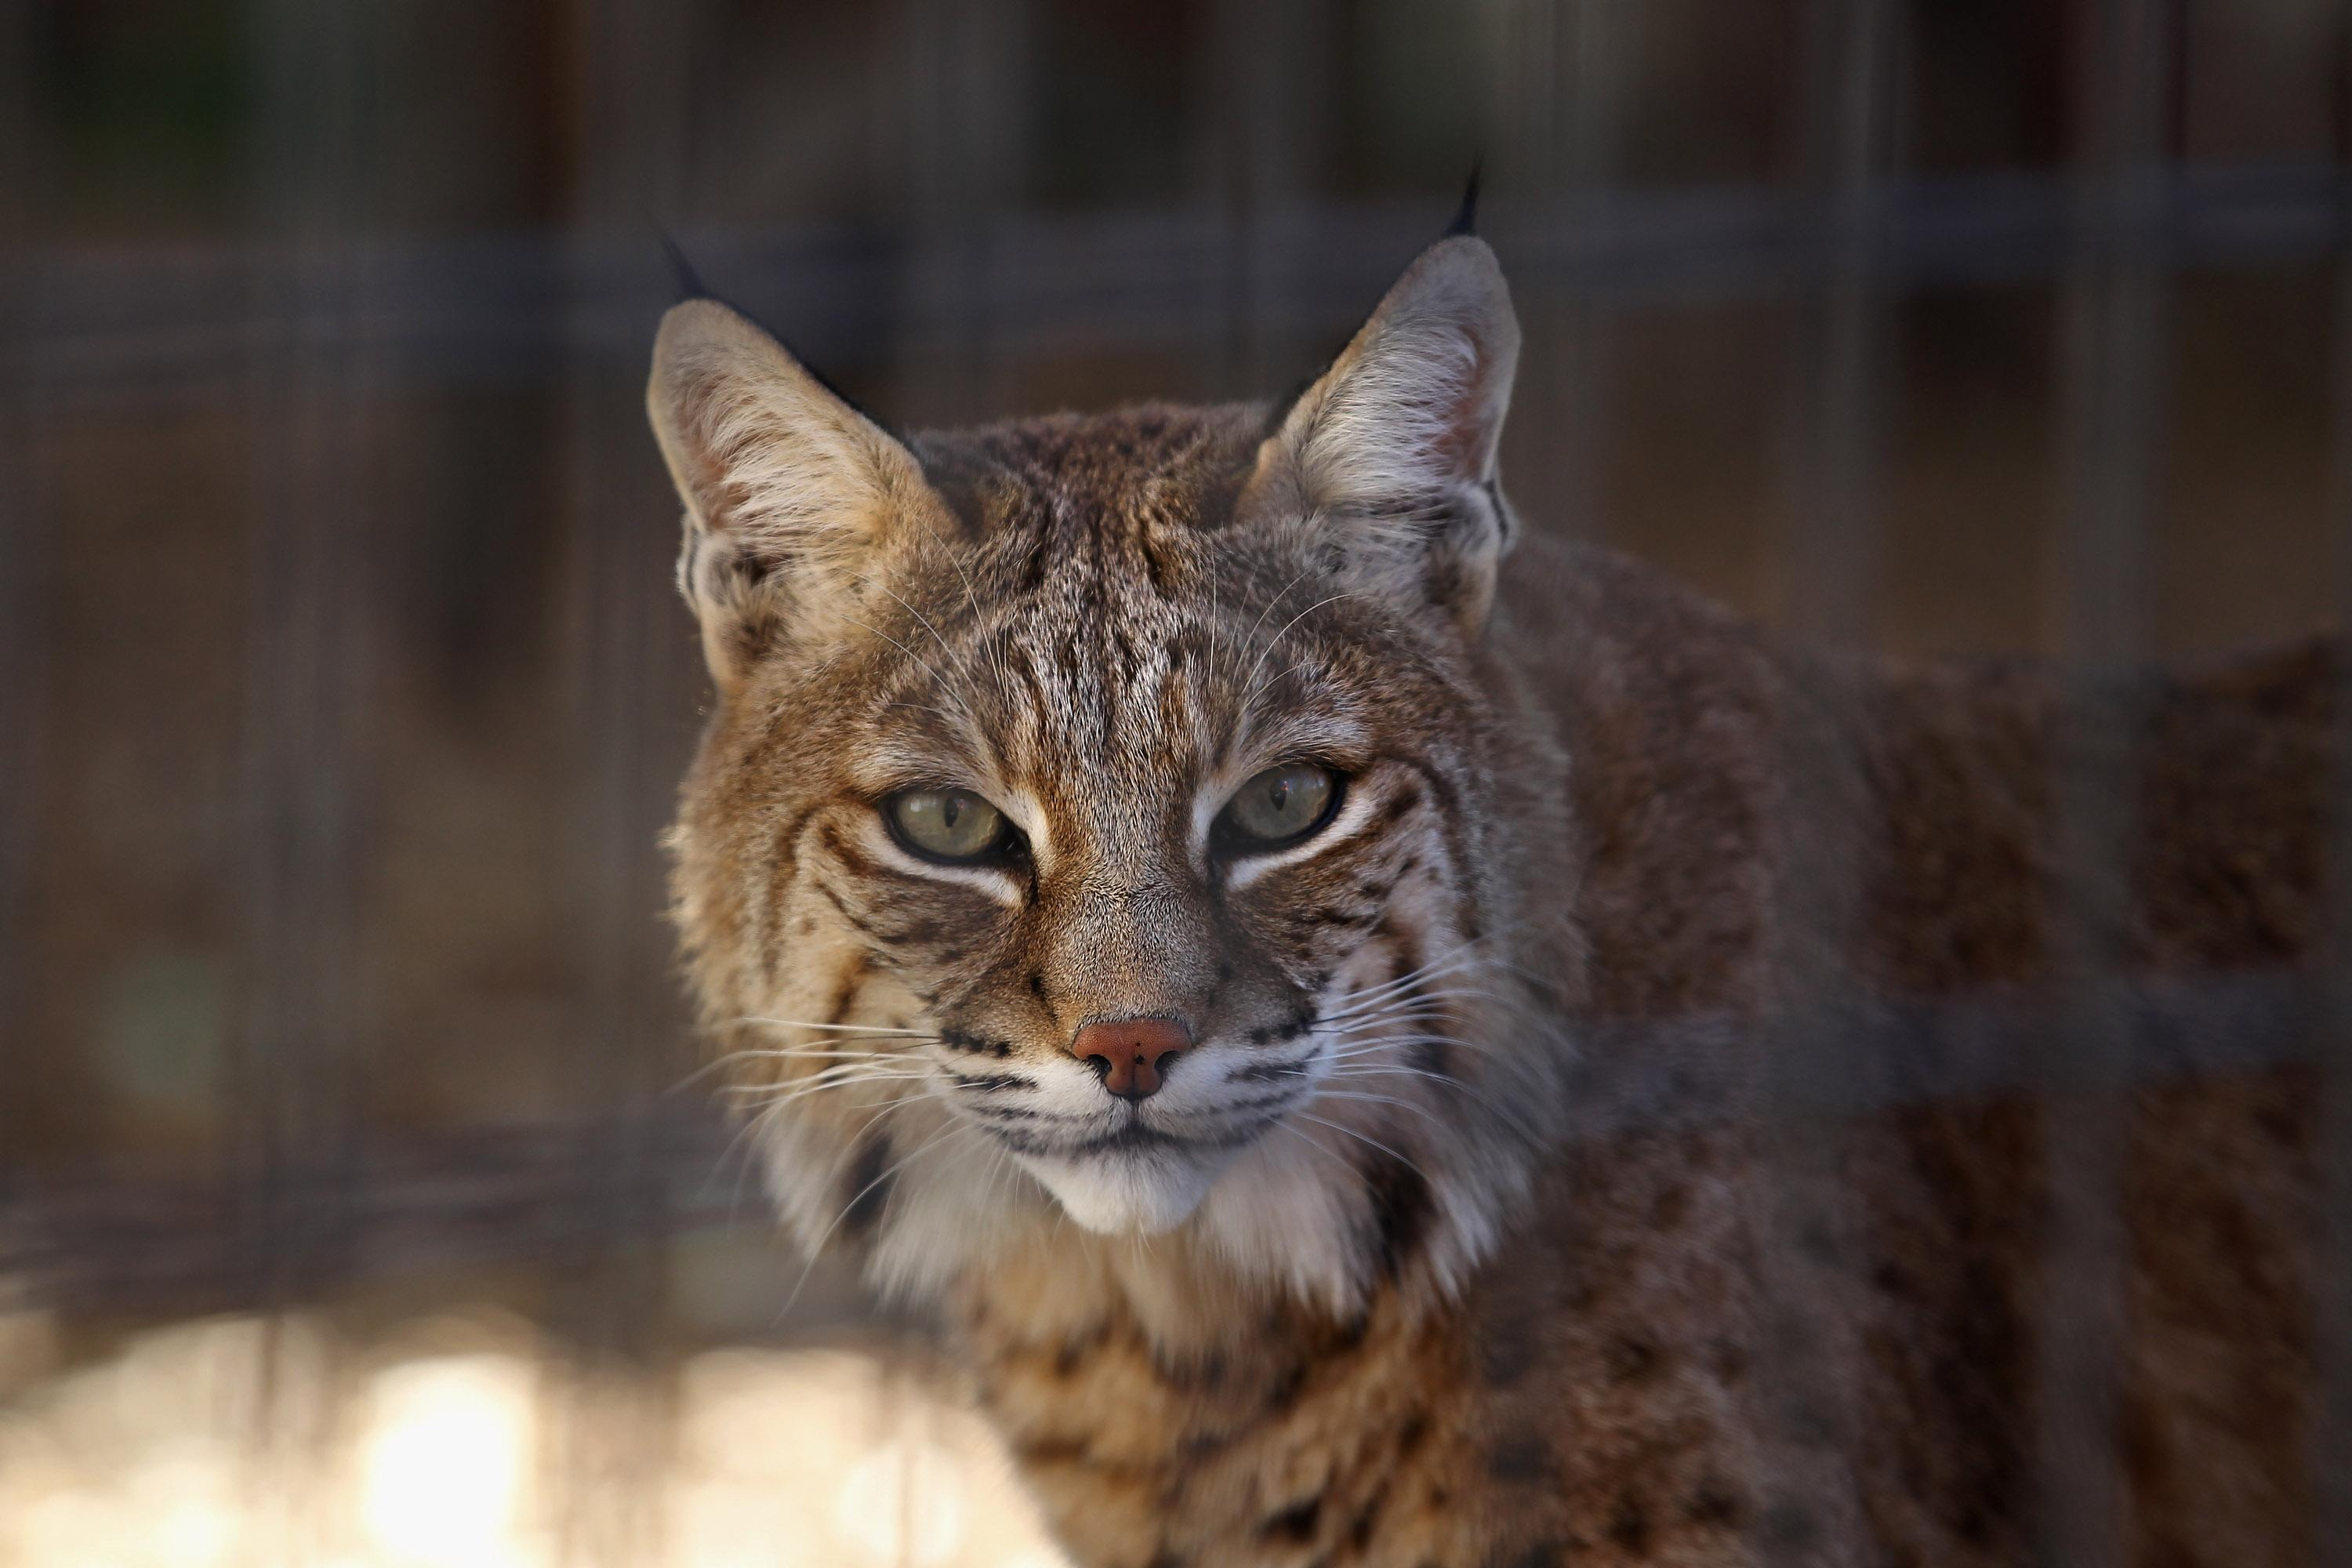 Grandma strangles rabid bobcat with her bare hands